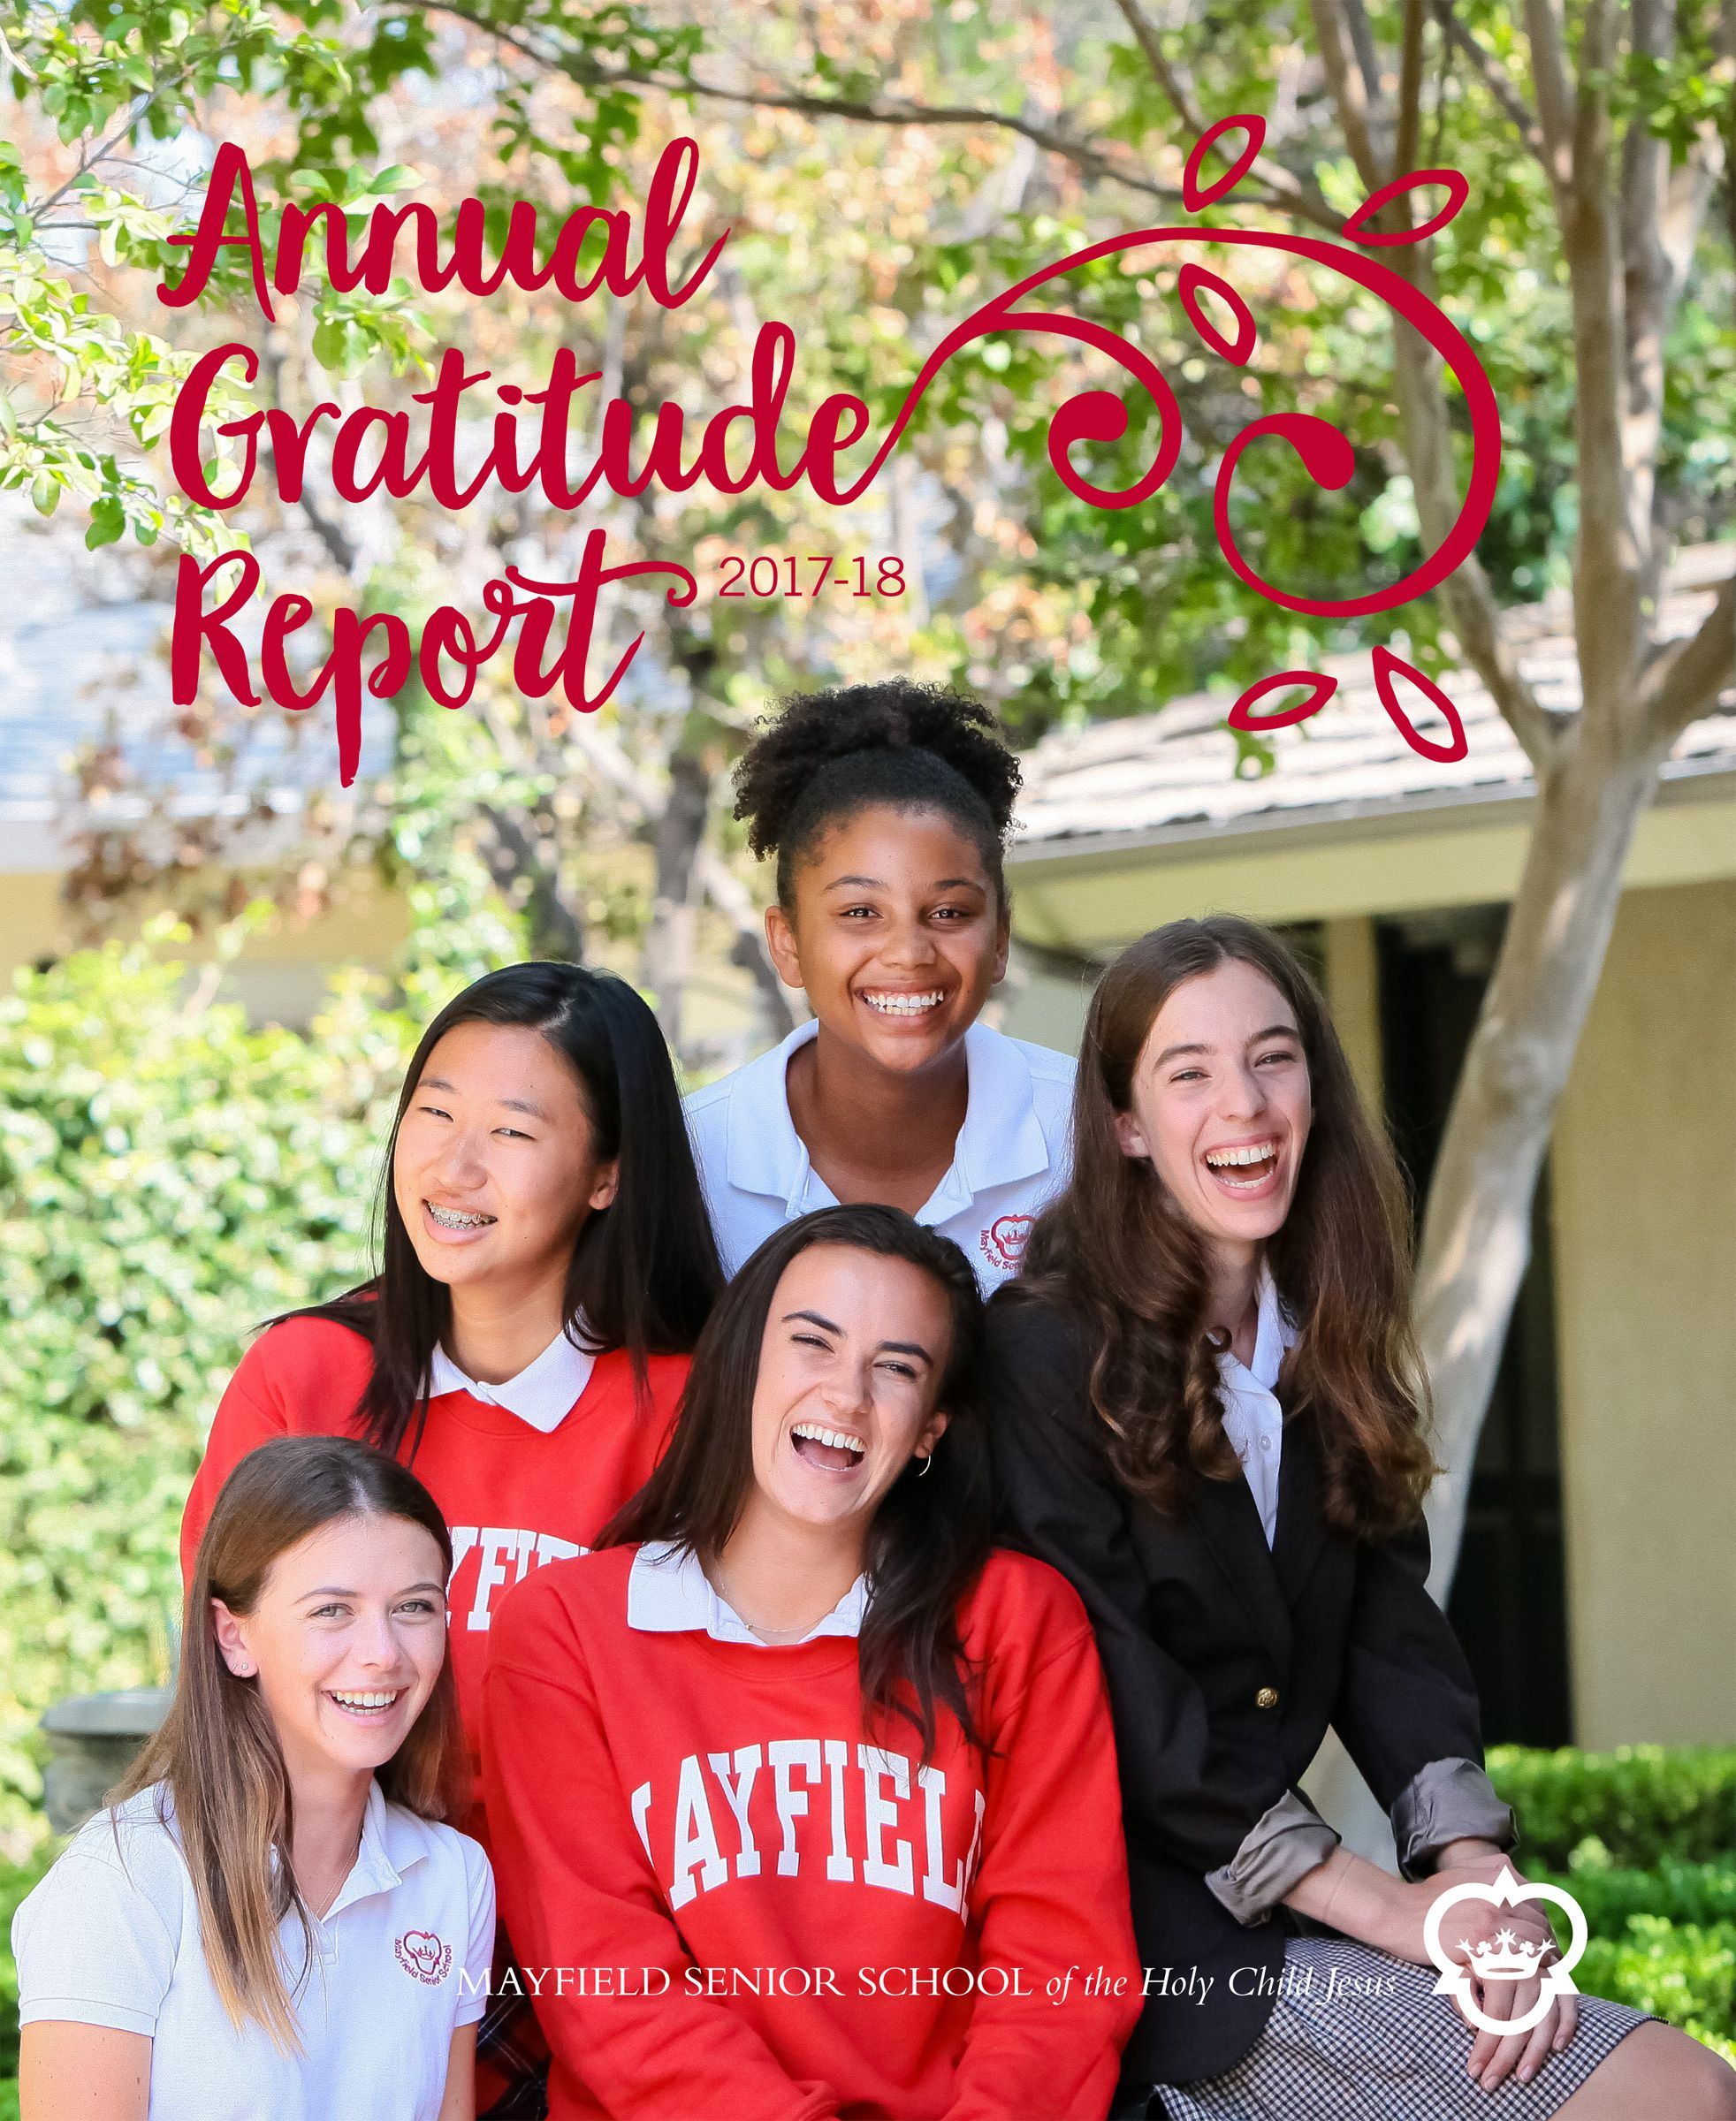 View our 2017-18 Annual Gratitude Report